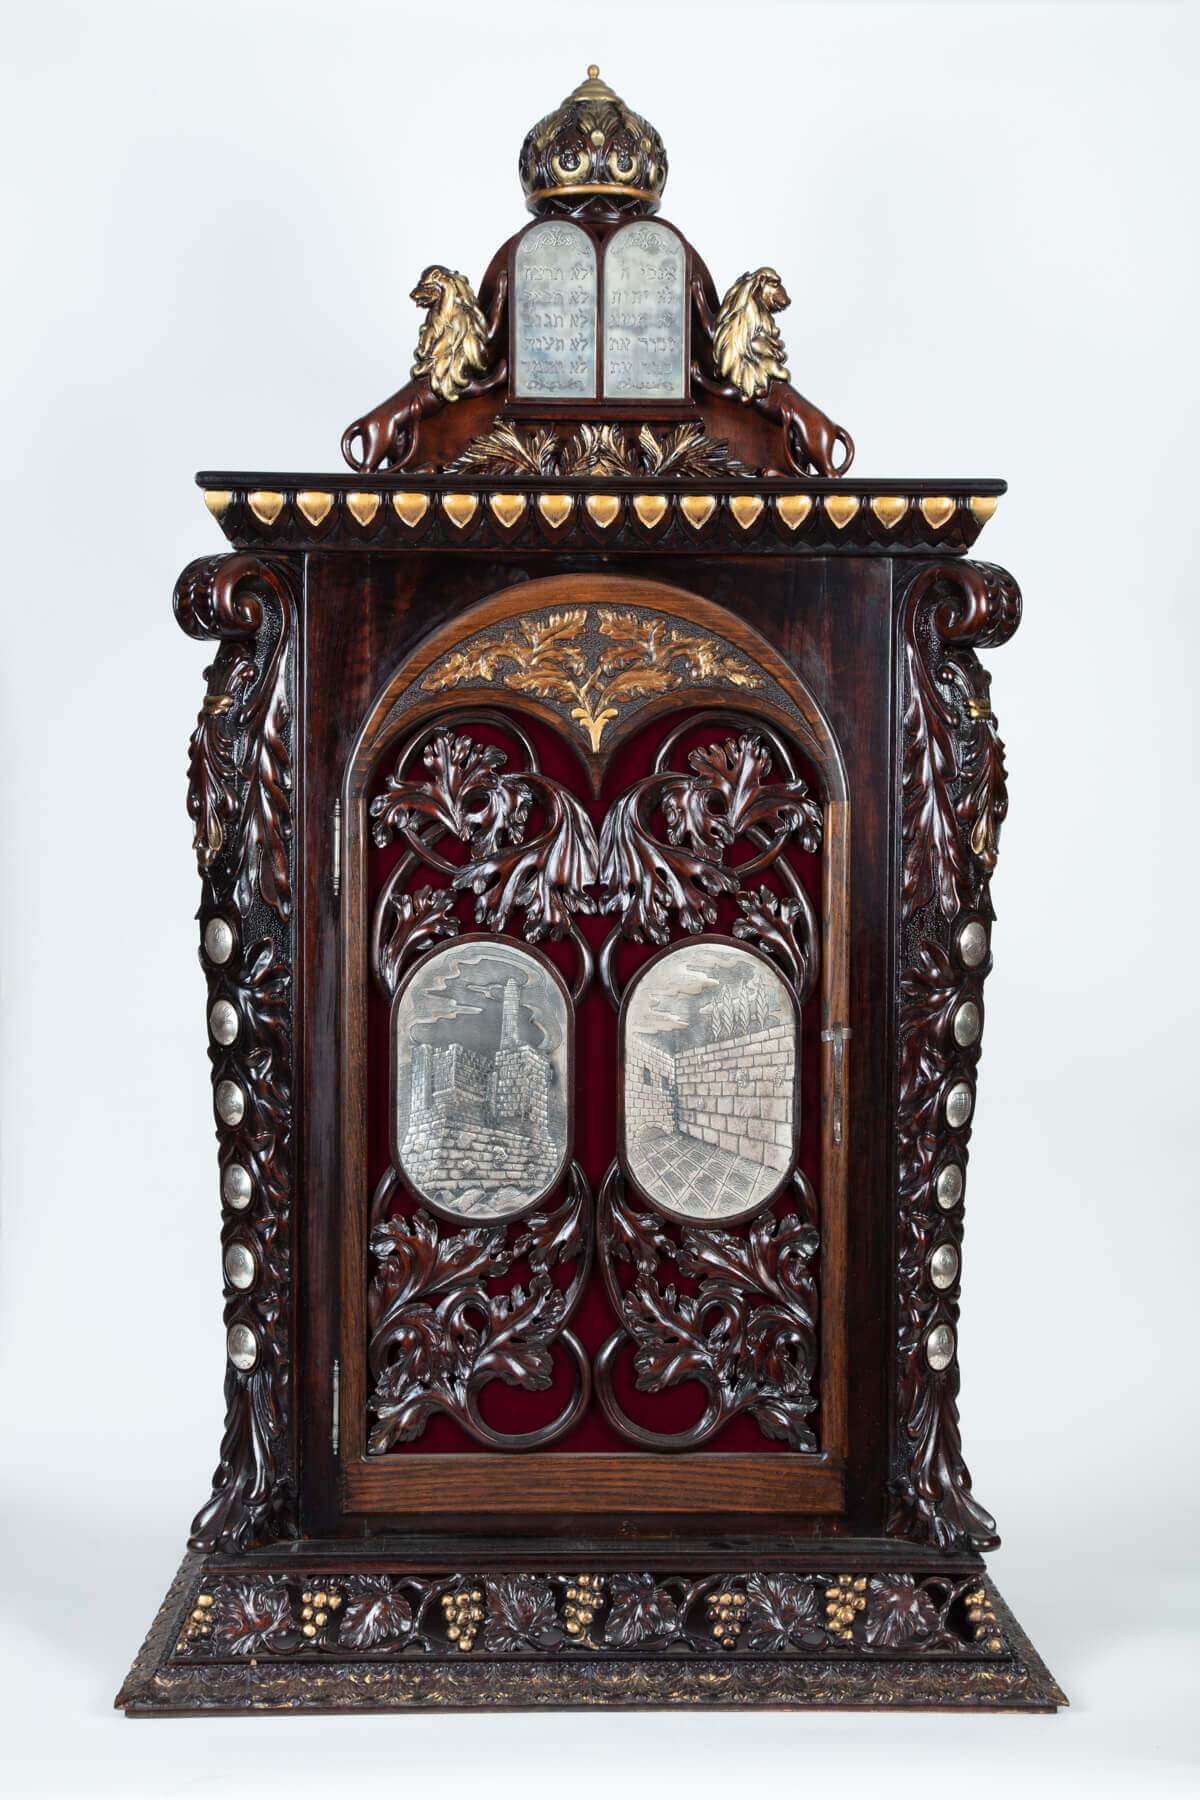 151. A MONUMENTAL WOODEN AND SILVER TORAH ARK BY SHUKI FREIMAN